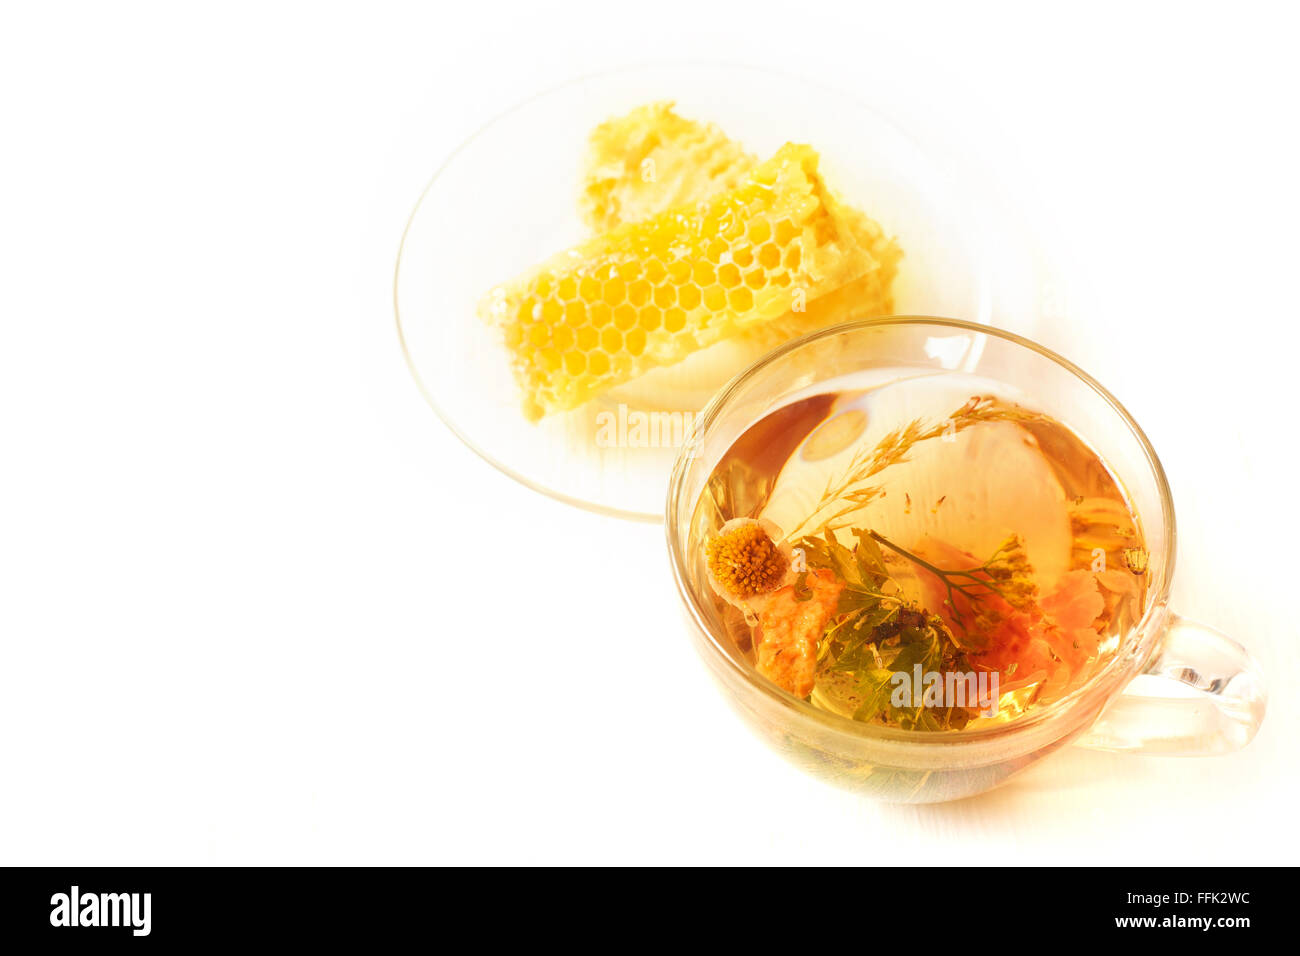 Herbal tea and honeycomb on a white table - Stock Image